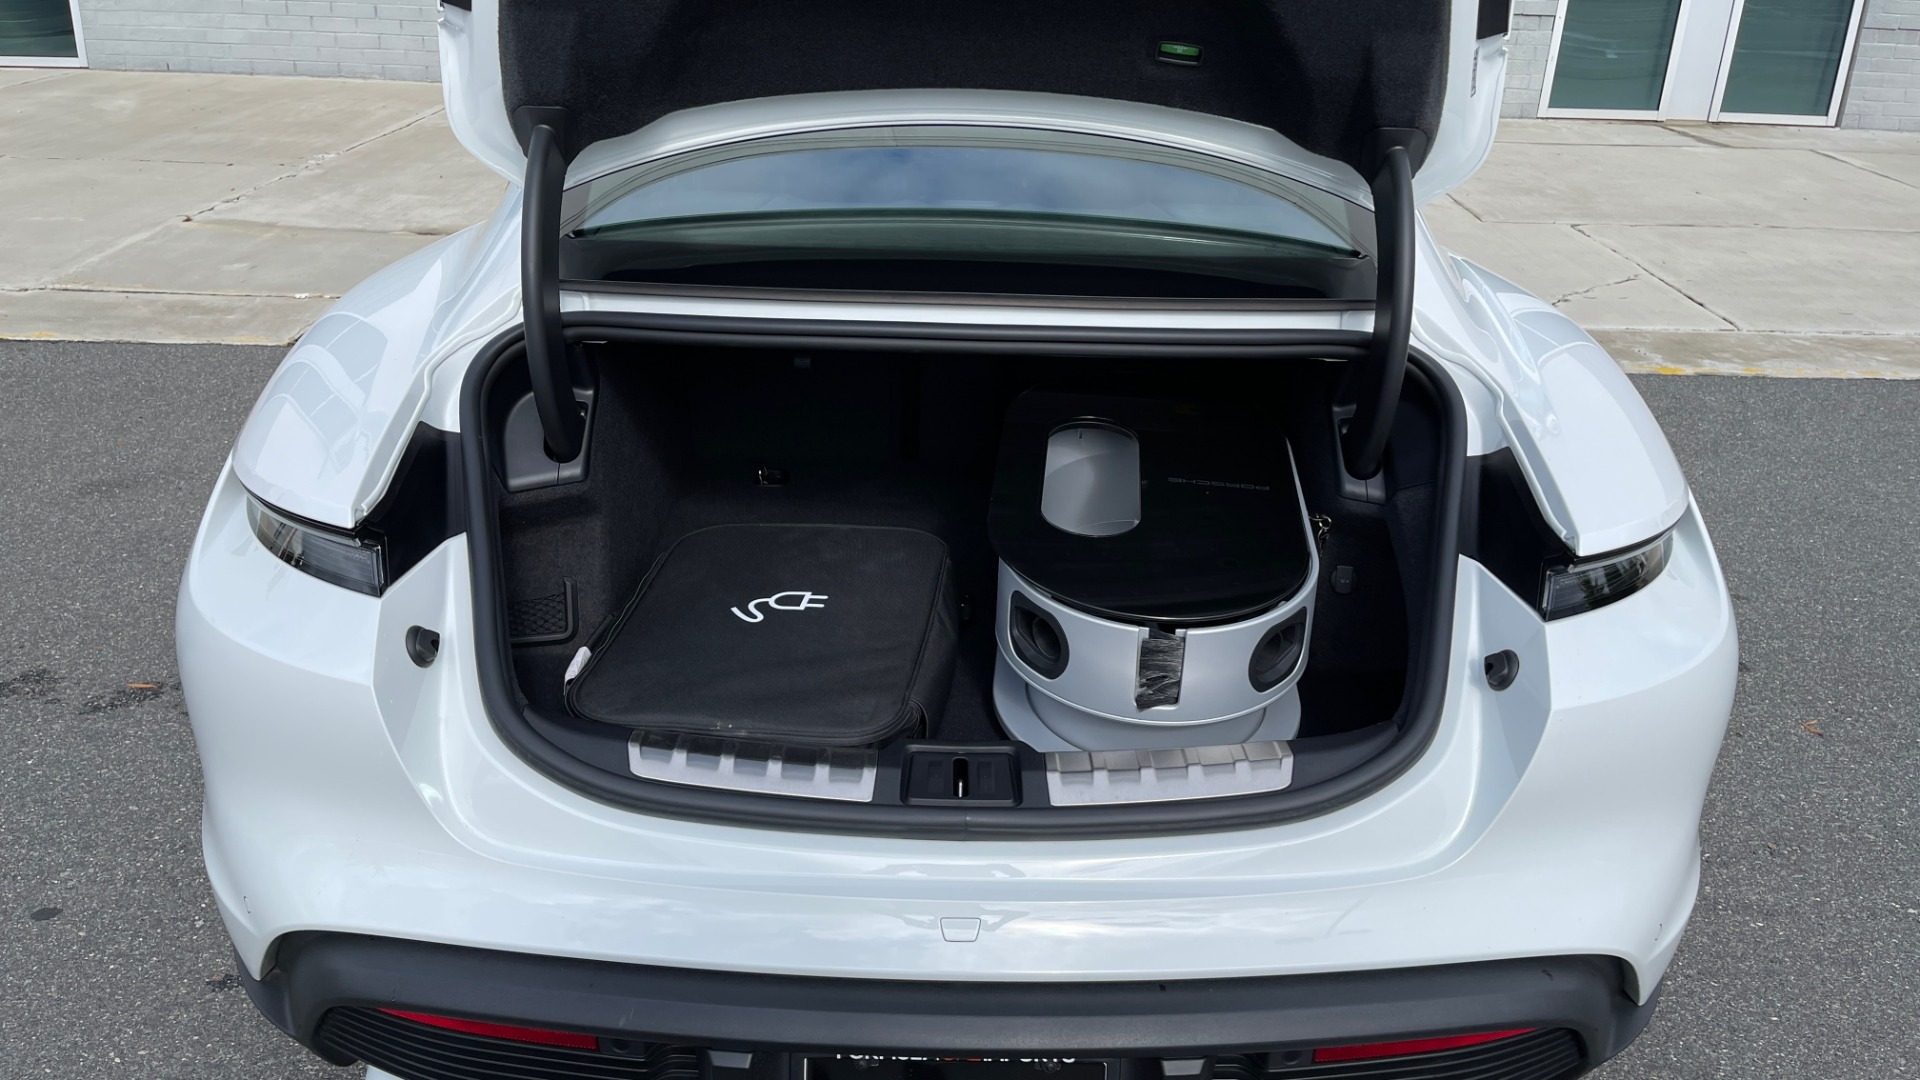 Used 2020 Porsche TAYCAN TURBO SEDAN / AWD / NAV / BOSE / PANO-ROOF / LCA / SURROUND VIEW for sale $162,995 at Formula Imports in Charlotte NC 28227 20